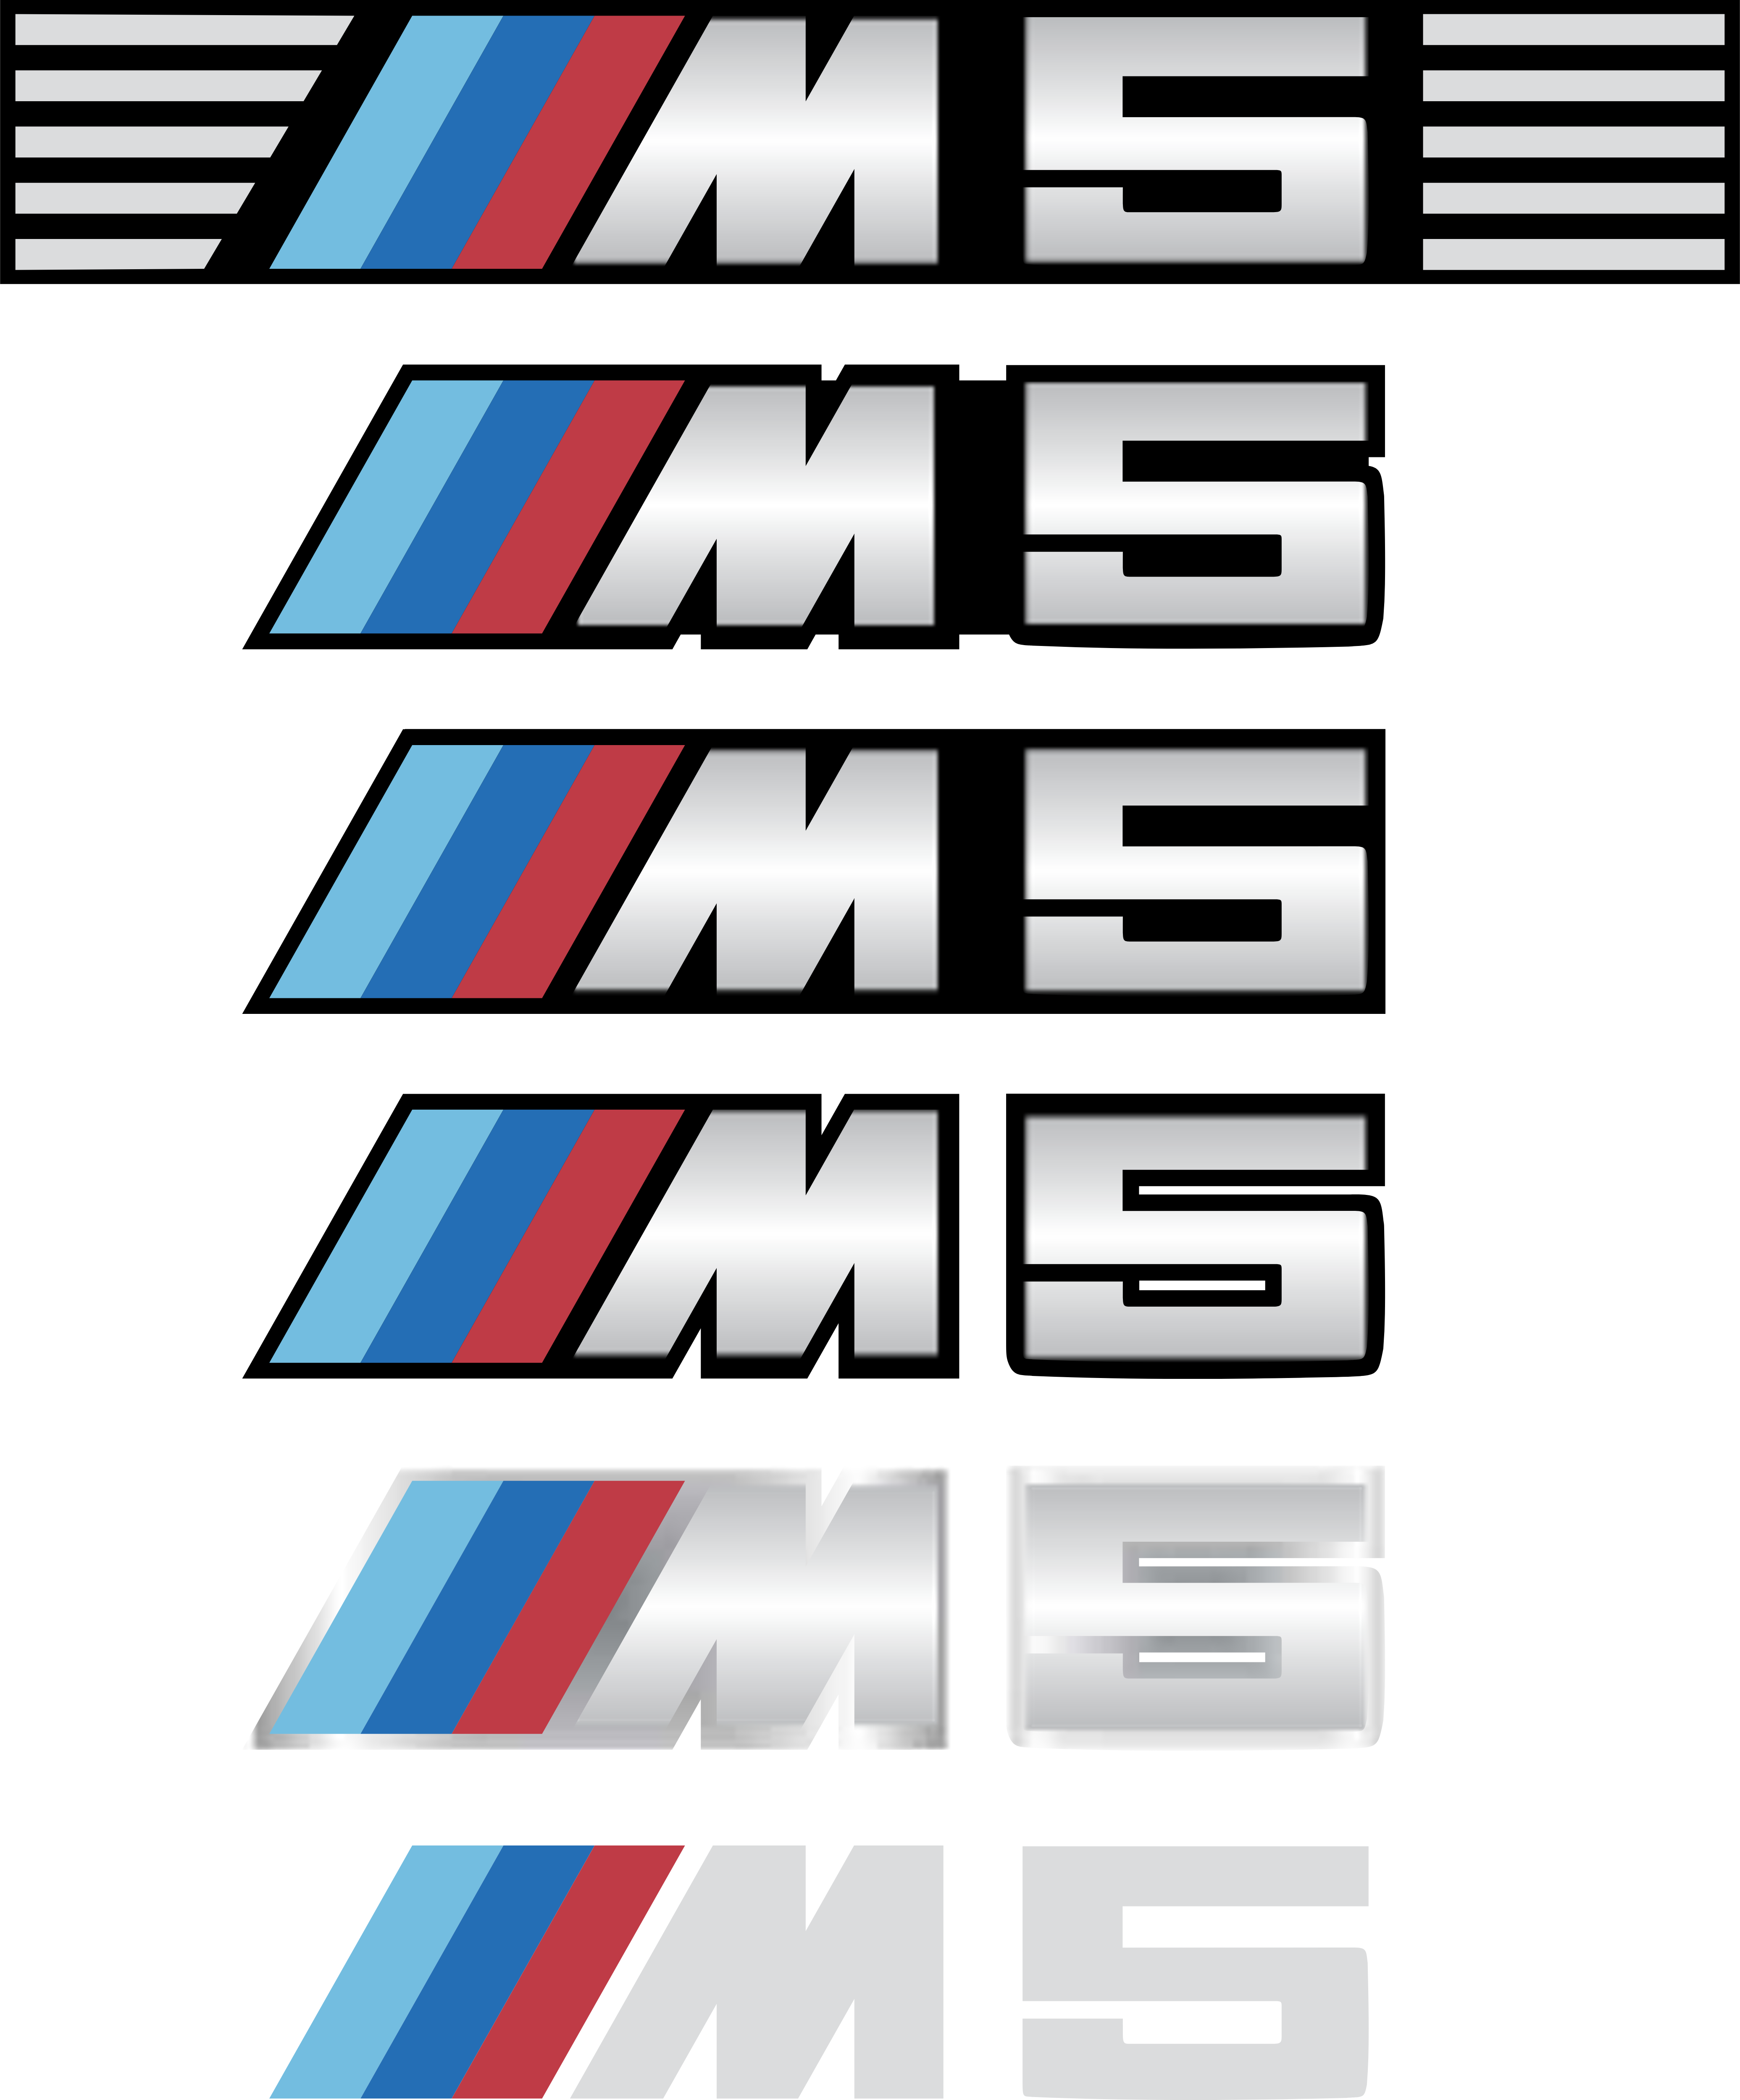 Car M5 Bmw M3 Series Logo PNG Image